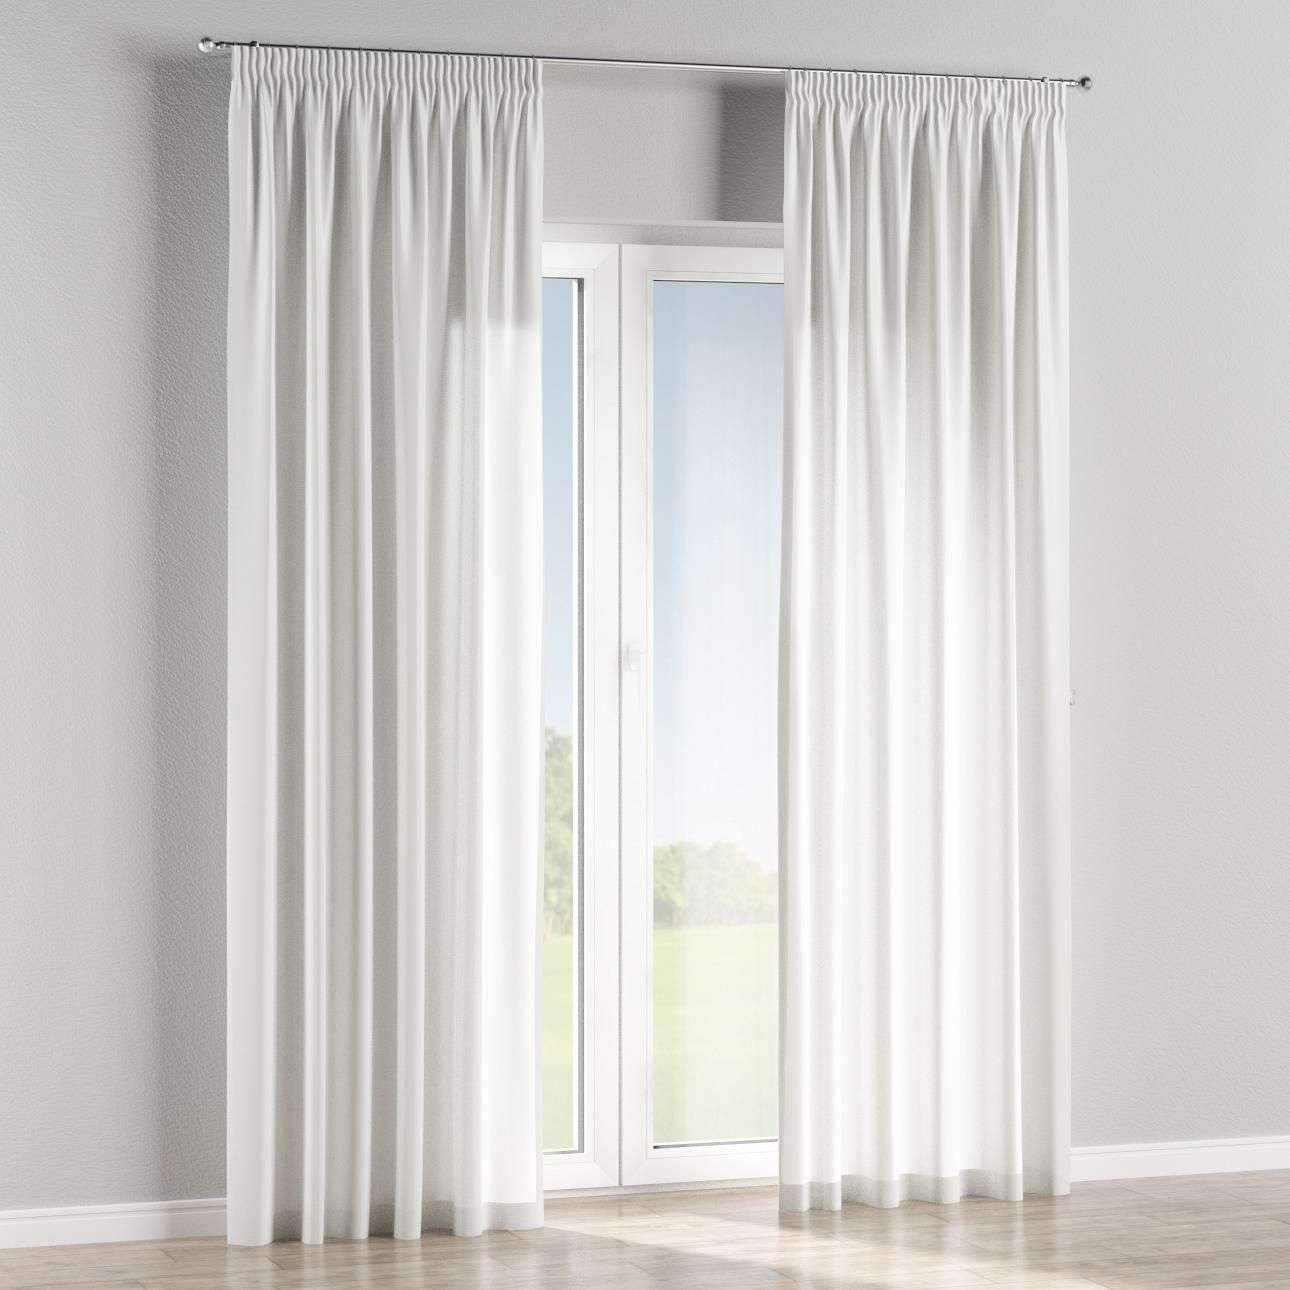 Pencil pleat curtains in collection Milano, fabric: 150-37